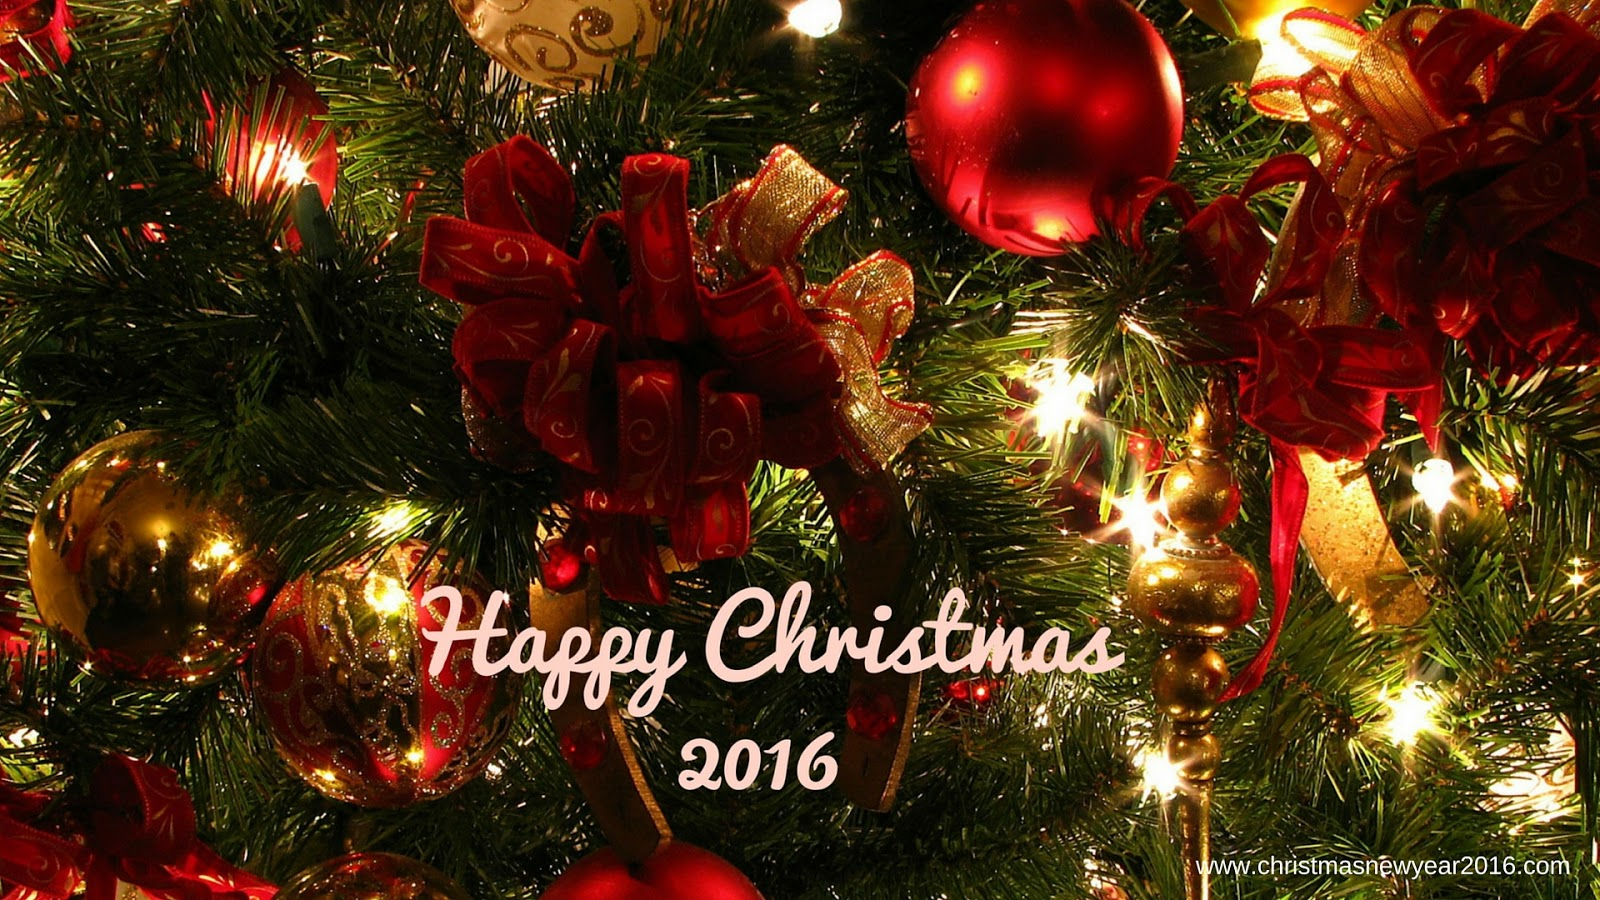 free christmas wallpapers 2015 & 2016 full hd for desktop